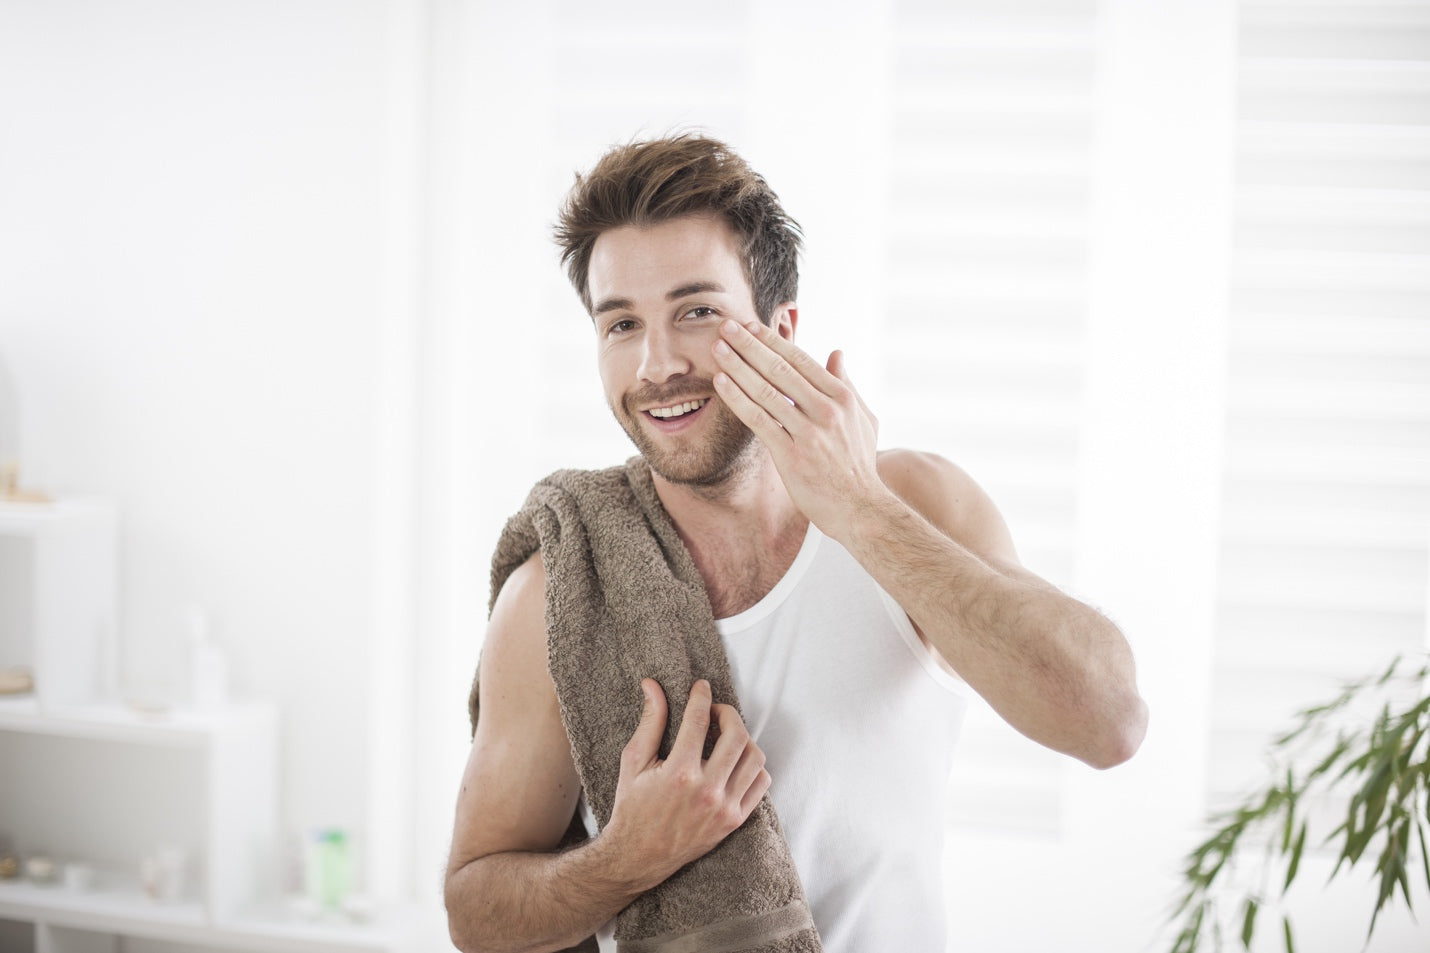 Happy man holding a towel applying face moisturizer